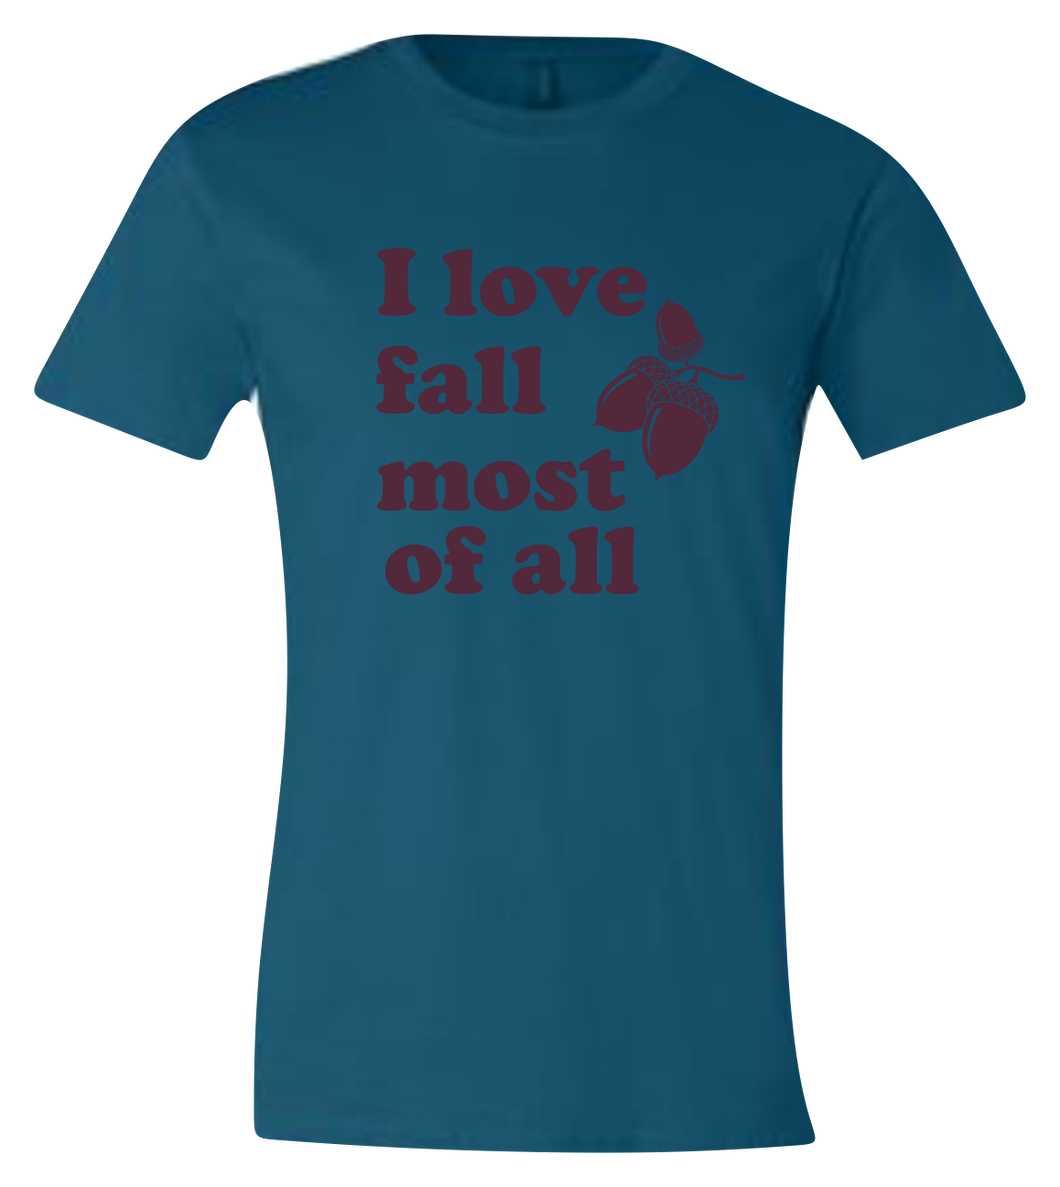 I Love Fall Most of All Short Sleeve Graphic T-shirt